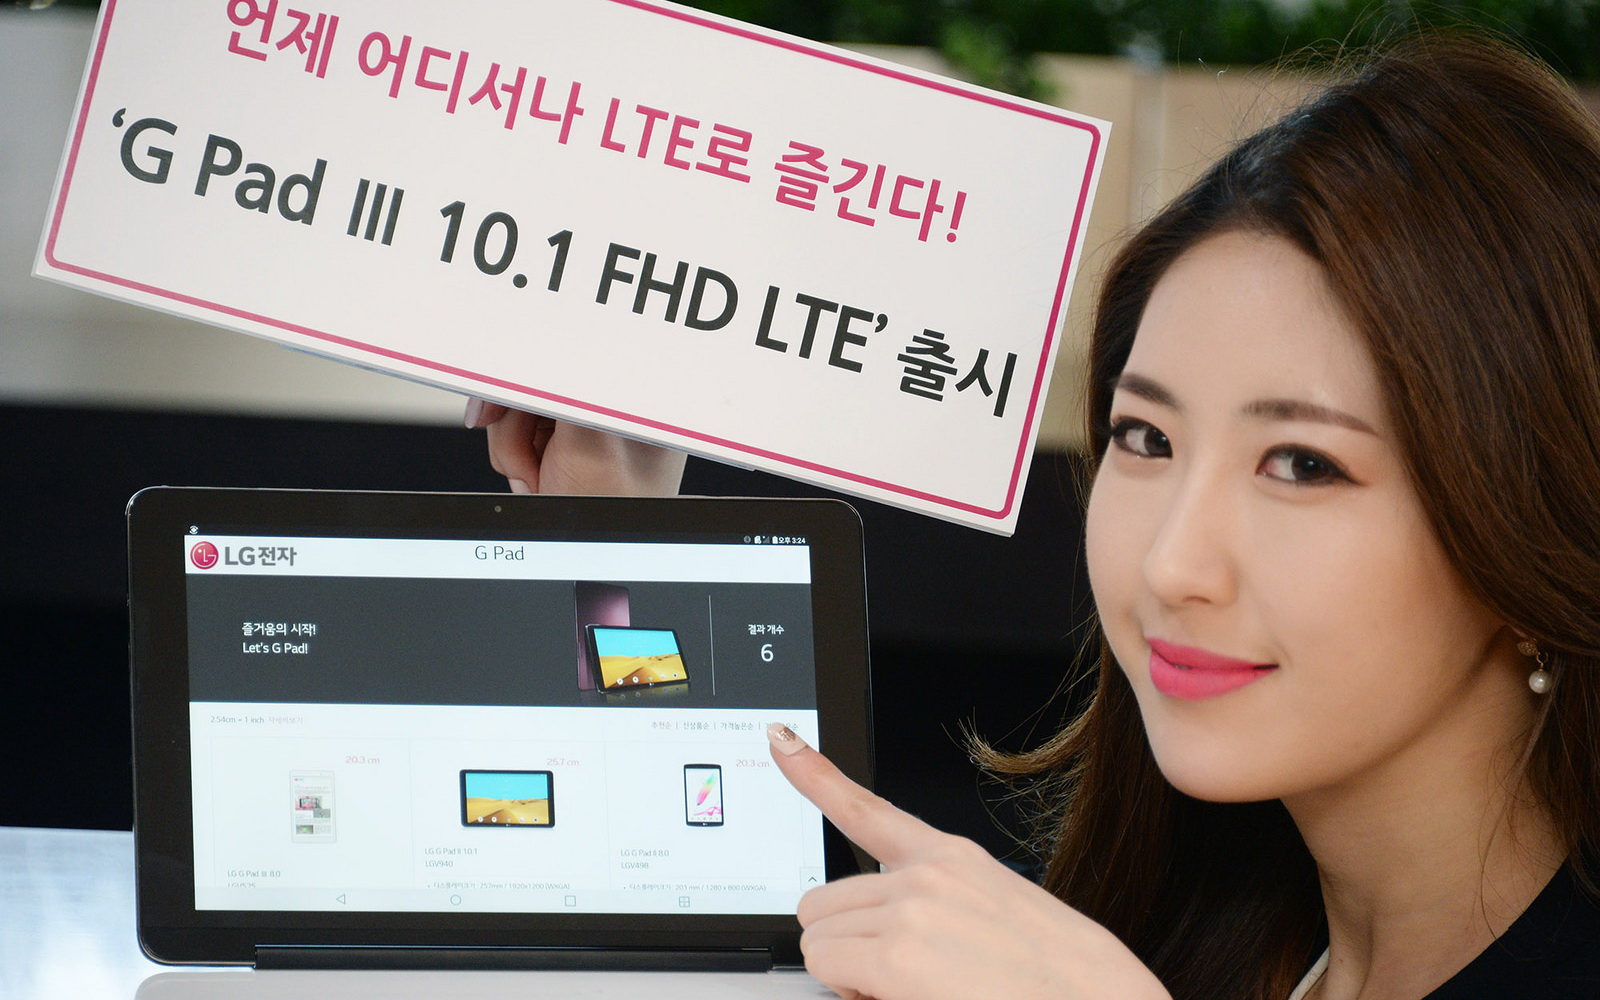 LG G Pad III: 10,1 Zoll FHD-LTE-Tablet in Südkorea gelauncht ...